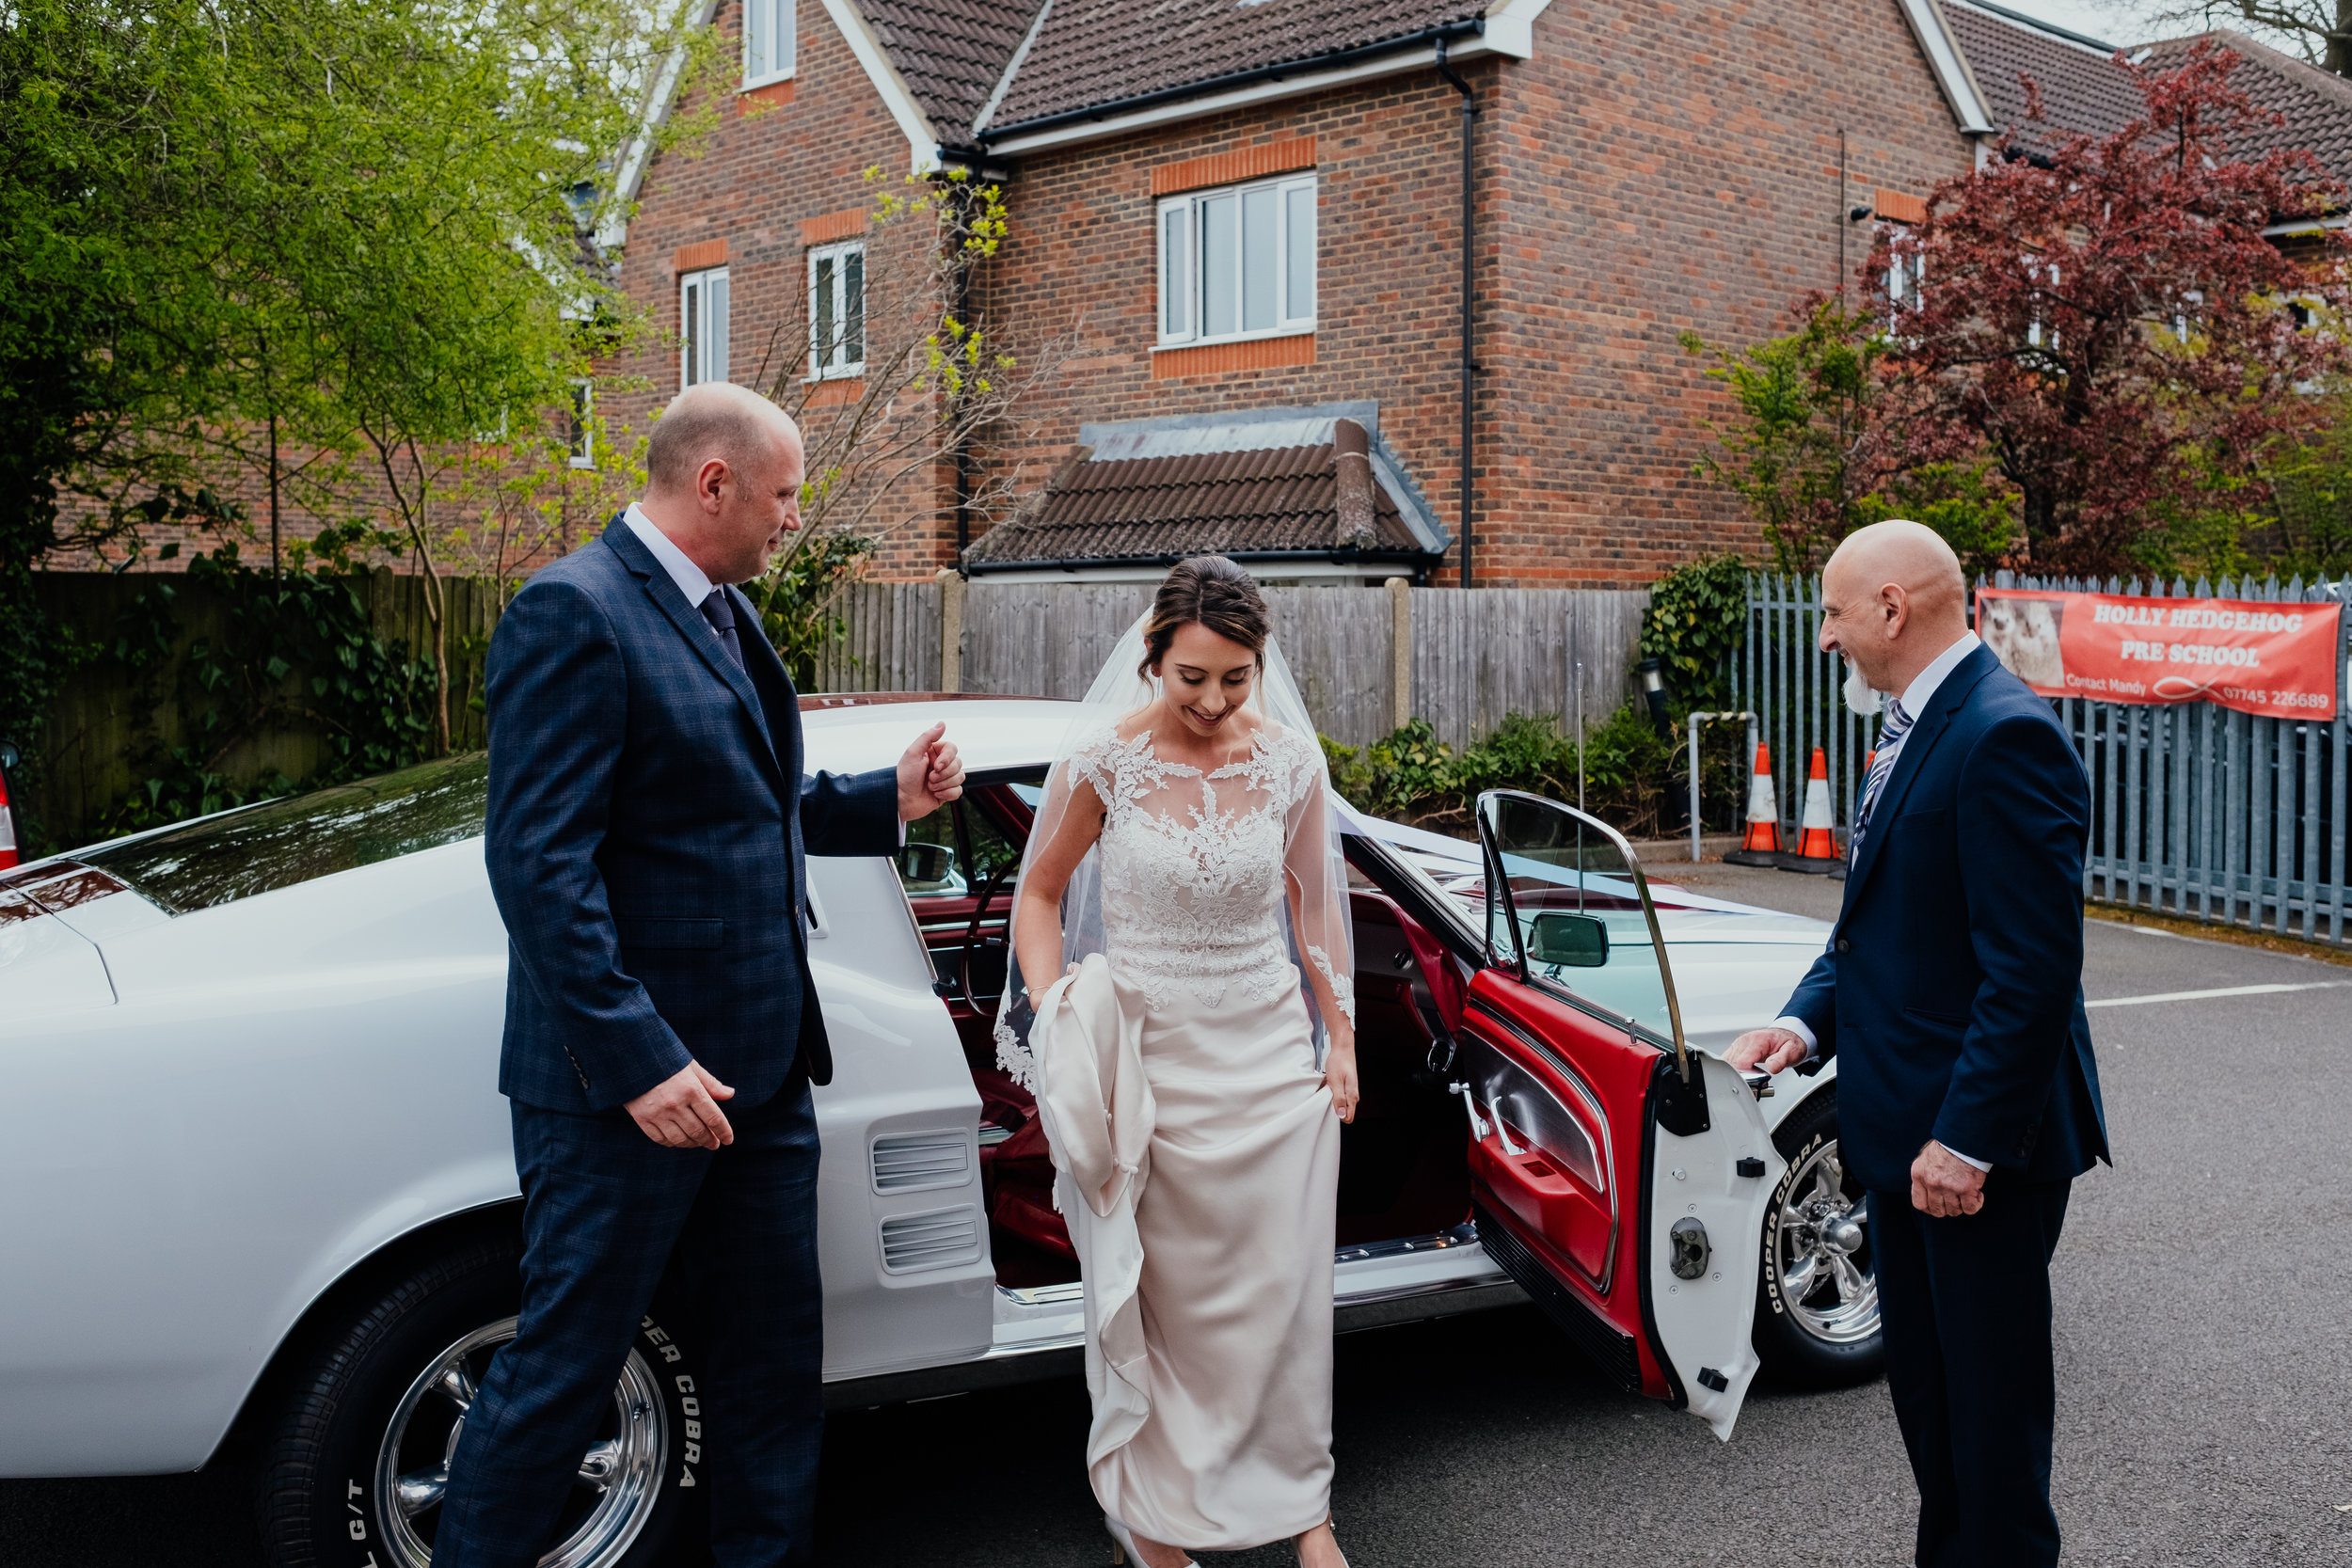 Bride and Father of the Bride arrive at the church in a mustang wedding car